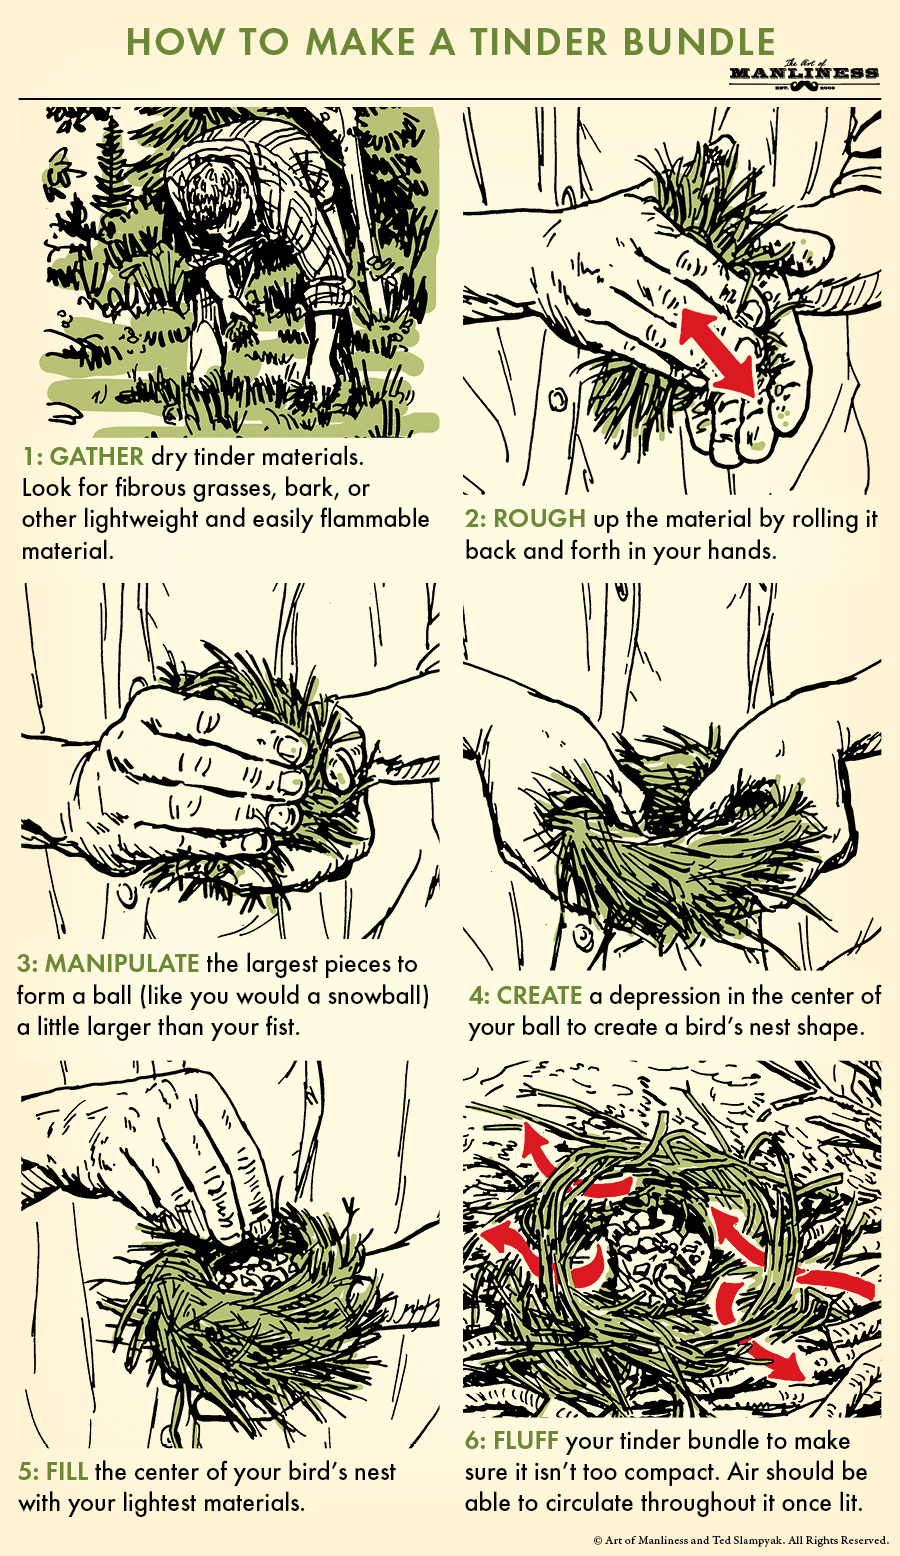 How to Make a Tinder Bundle | The Art of Manliness